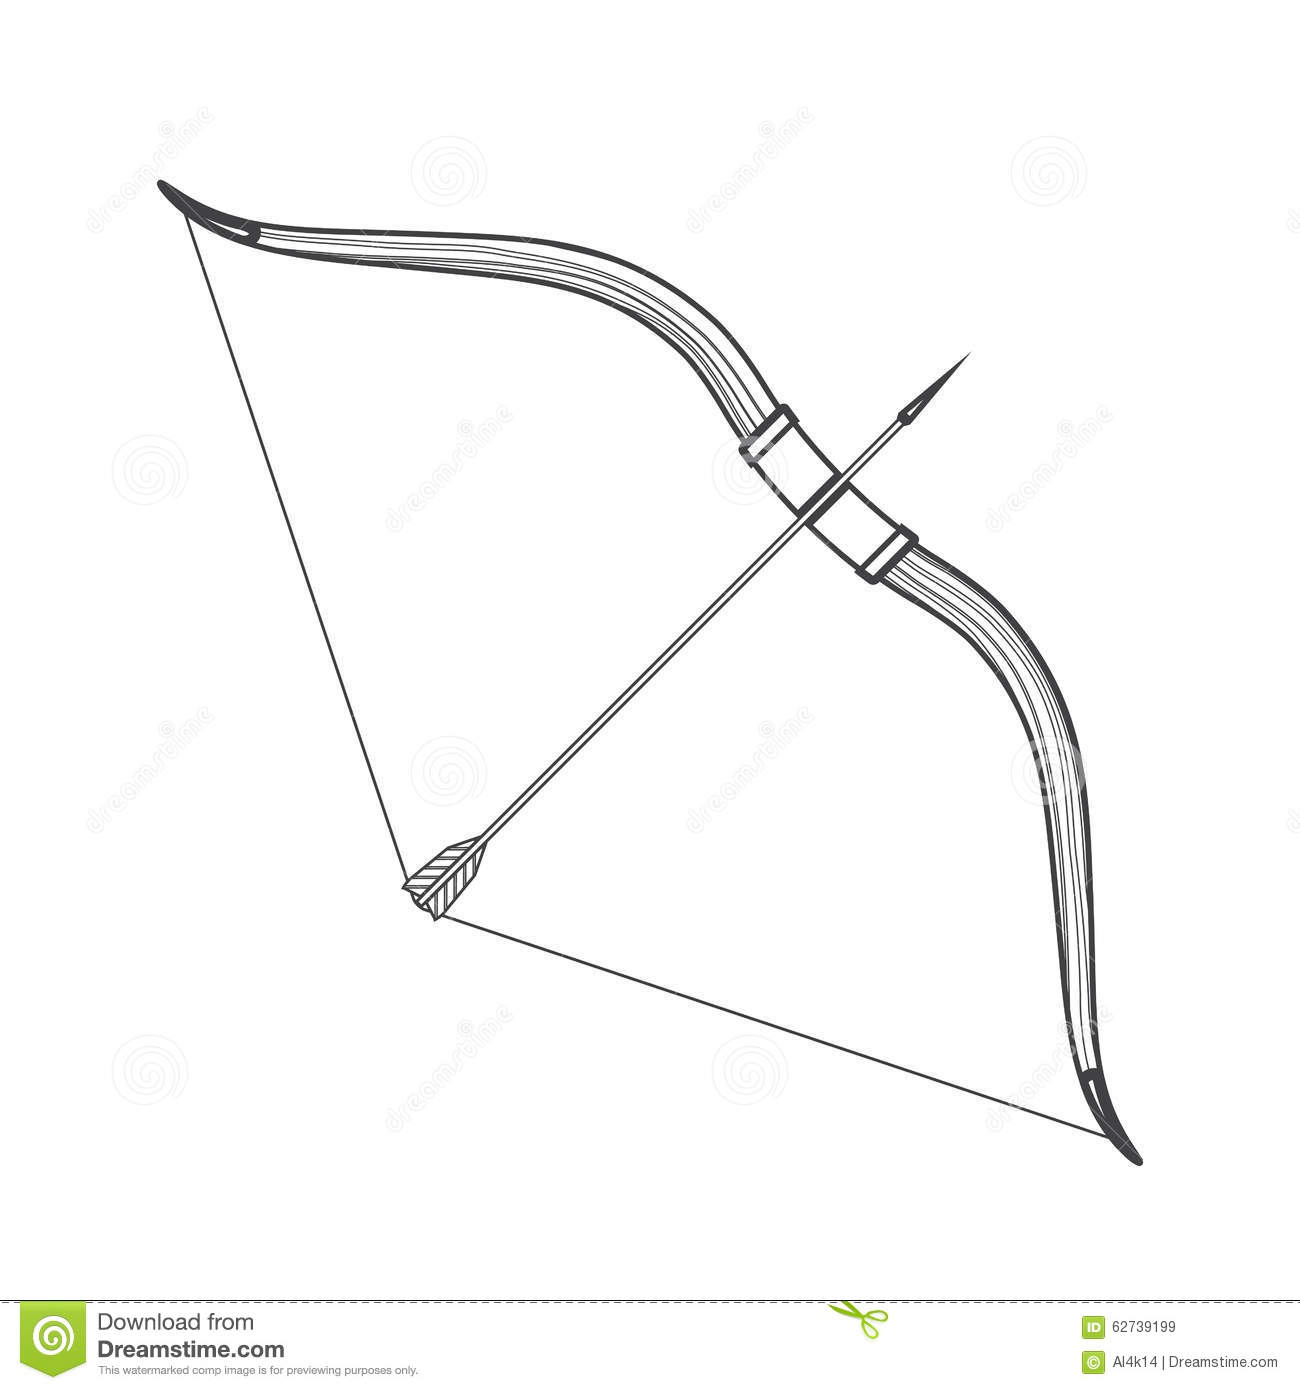 Outline Me Val Bow Arrow Icon Illustration Stock Vector